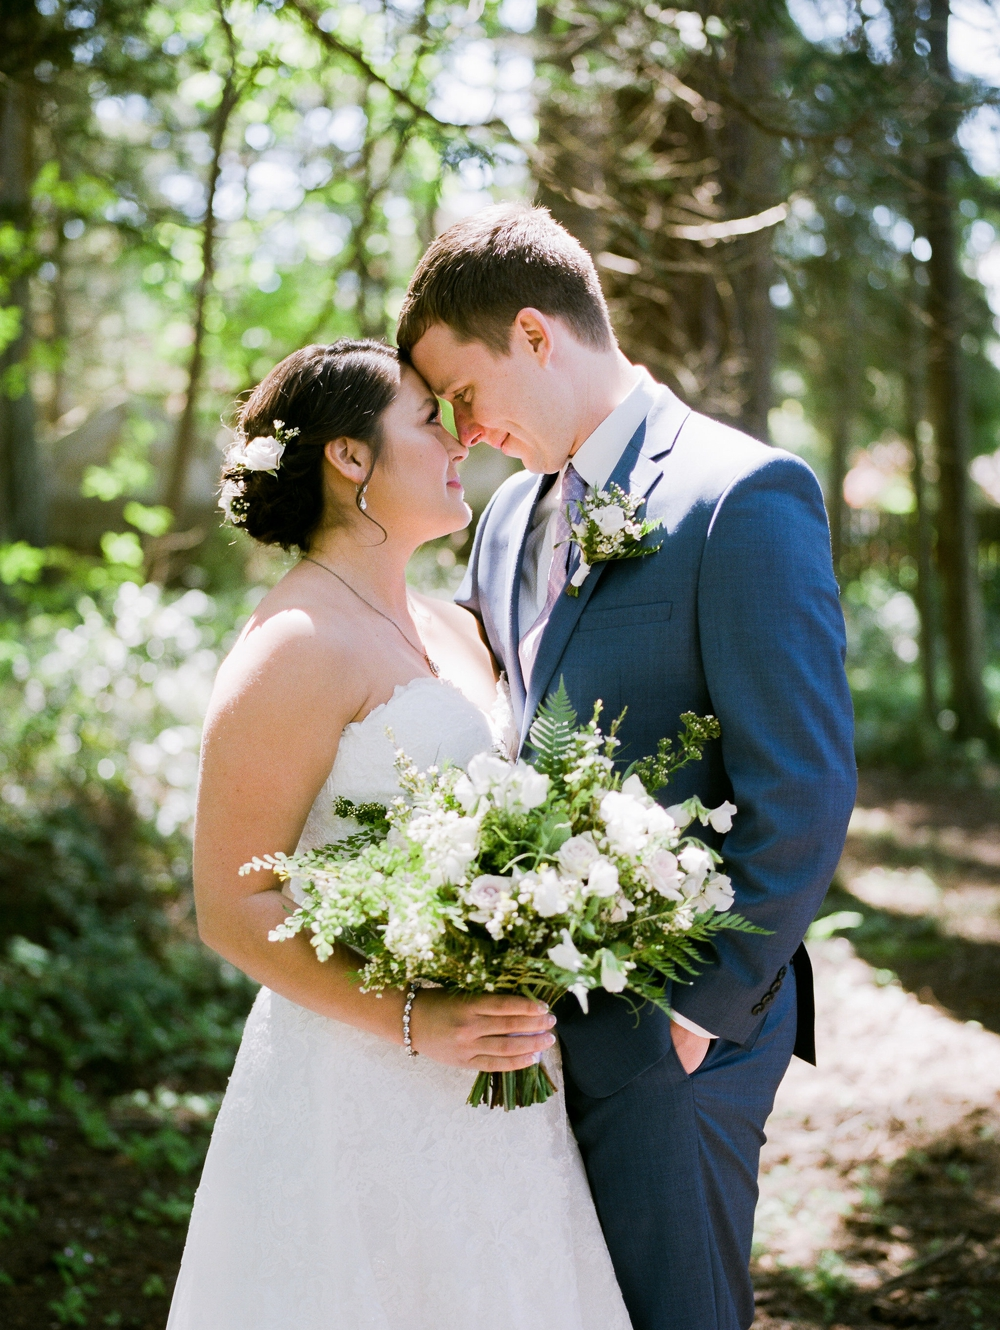 bride and groom nuzzling and holding a white spring themed bouquet